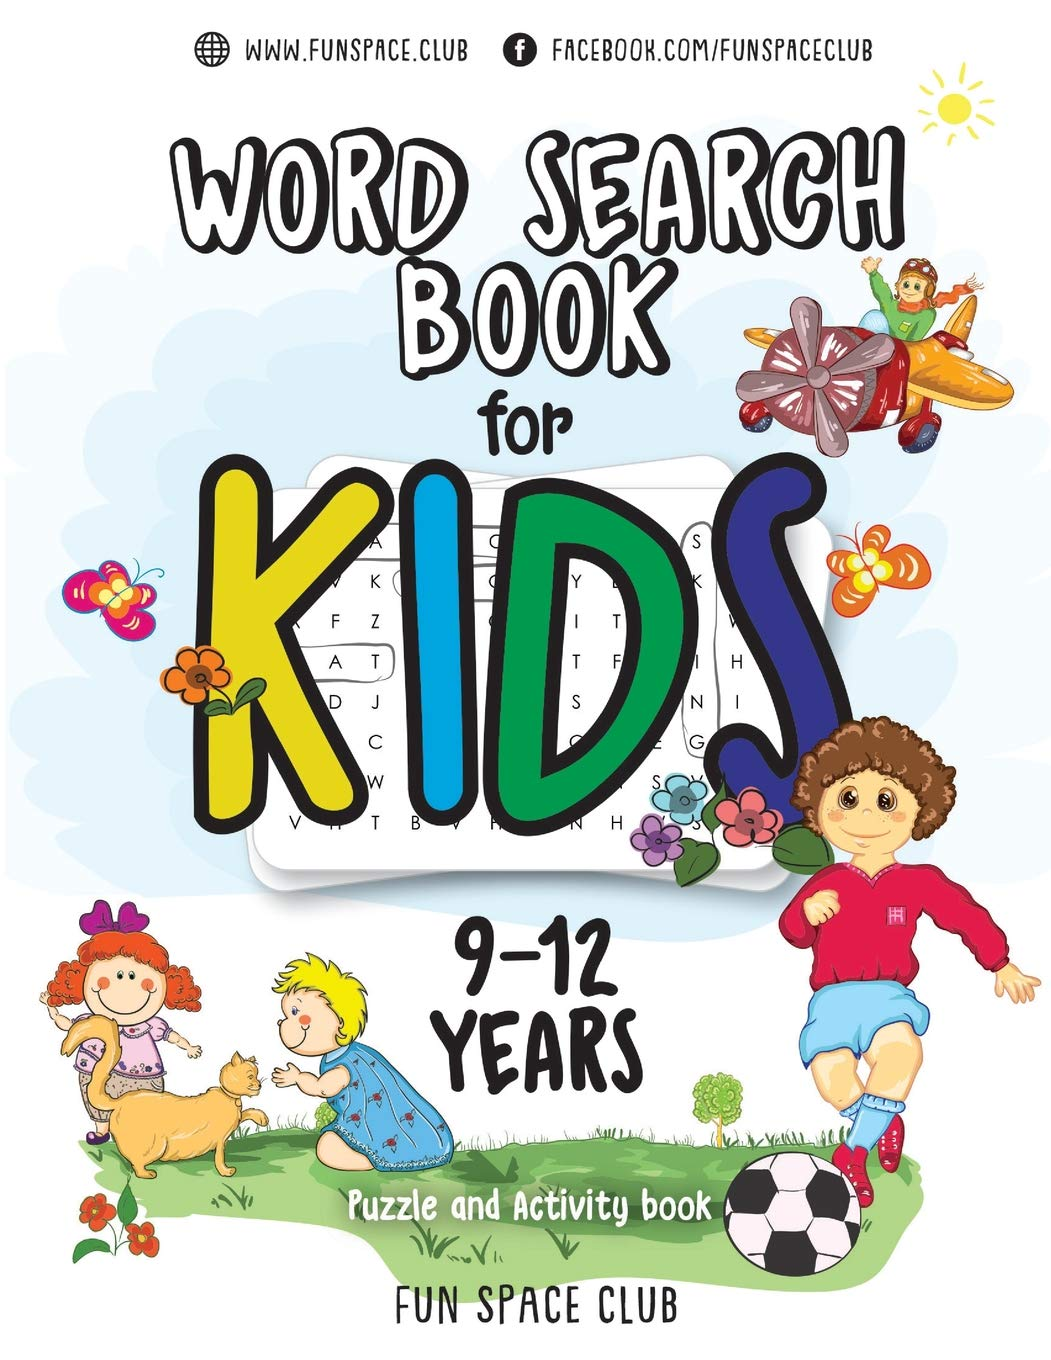 Word Search Books For Kids 9 12  Word Search Puzzles For Kids Activities Workbooks Age 9 10 11 12 Year Olds  Fun Space Club Games Word Search Puzzles For Kids Band 3